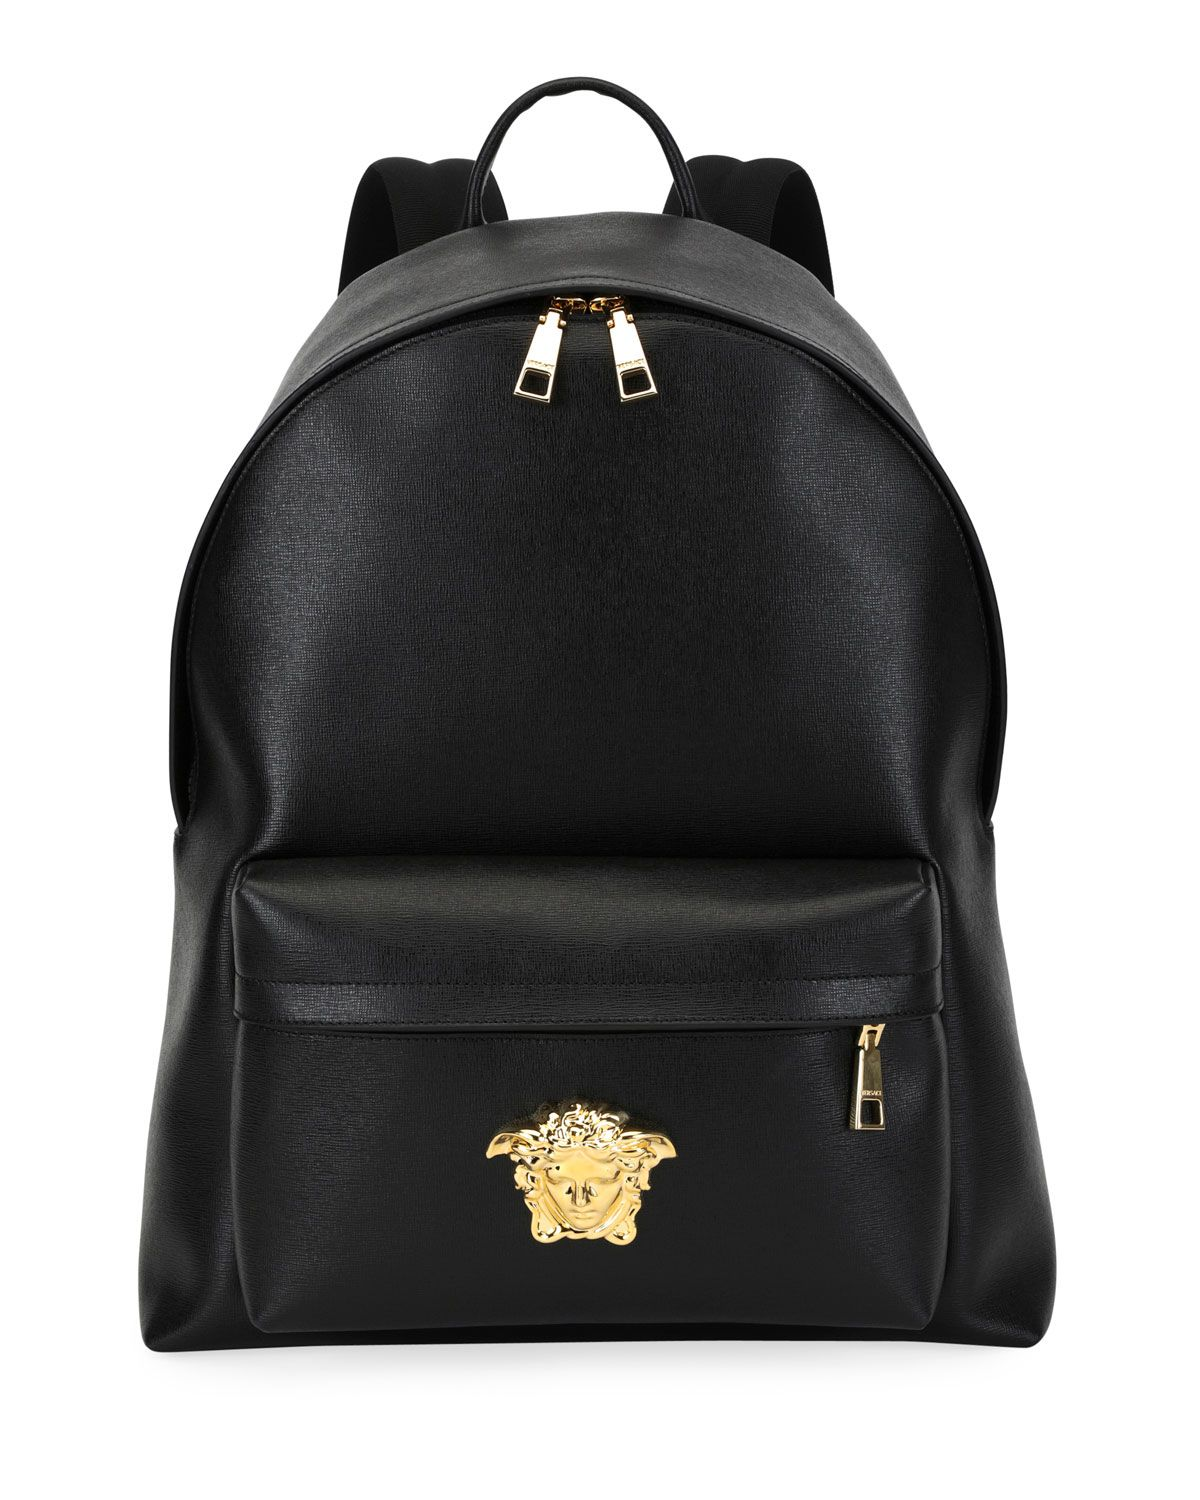 8db50a9fc30 VERSACE MEN'S LEATHER MEDUSA BACKPACK. #versace #bags #leather #nylon # backpacks